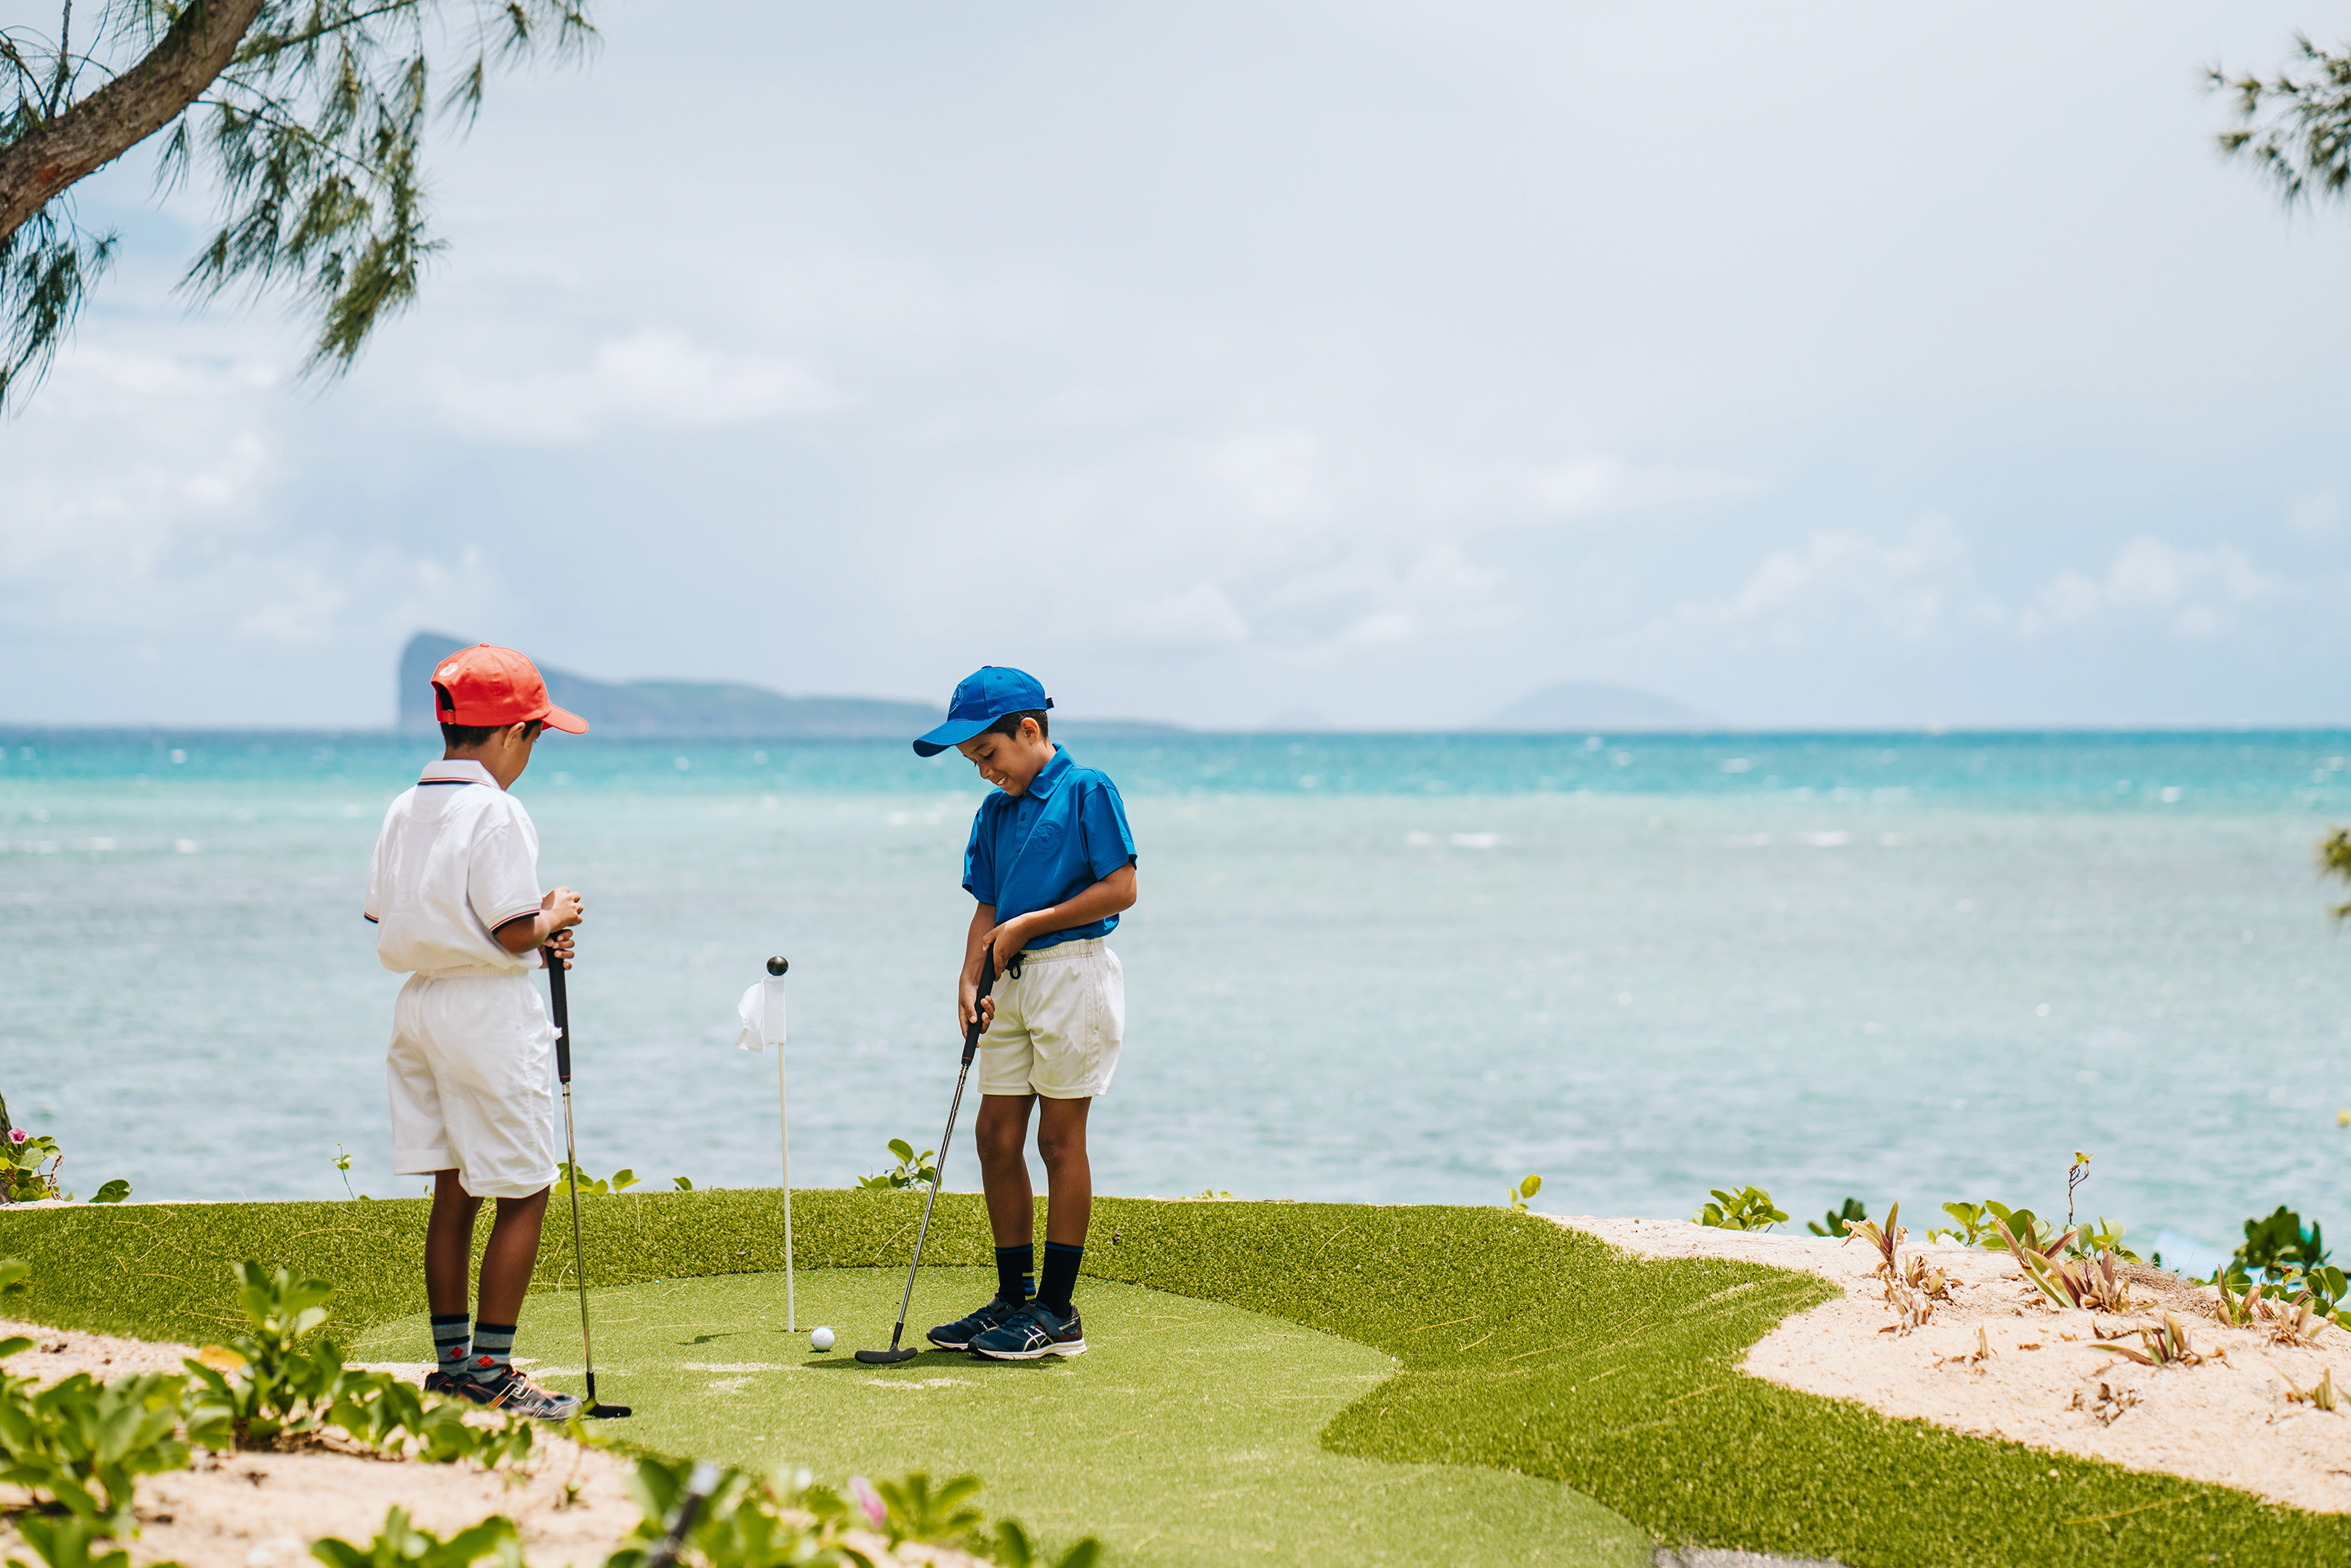 A new mini-golf at the Canonnier Beachcomber Golf Resort & Spa: it's time for tee!